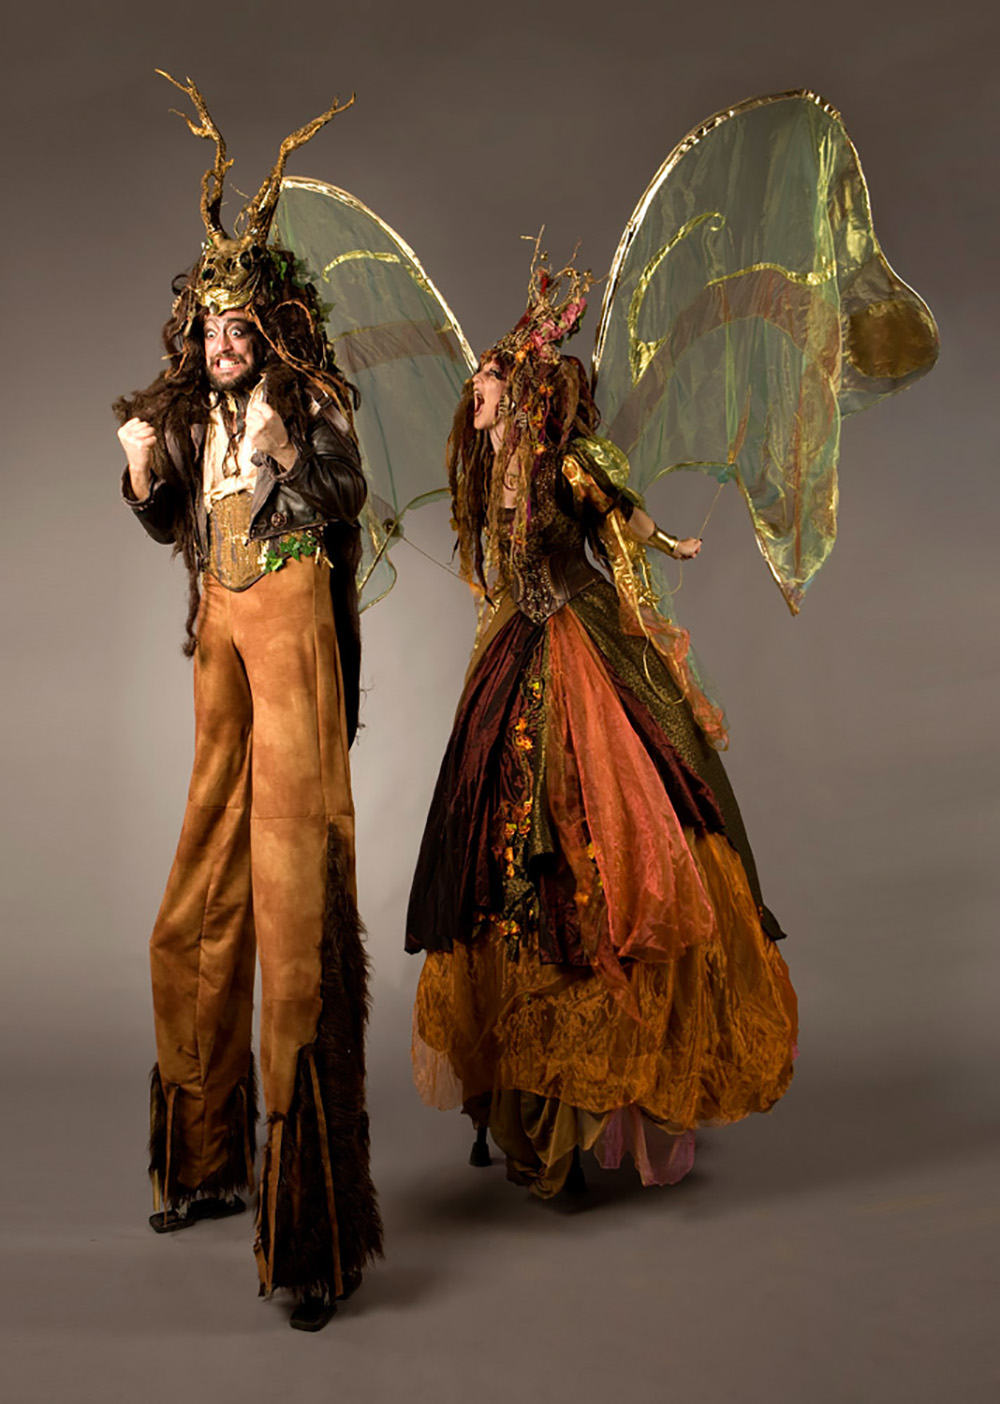 The Dream Oberon and Titania